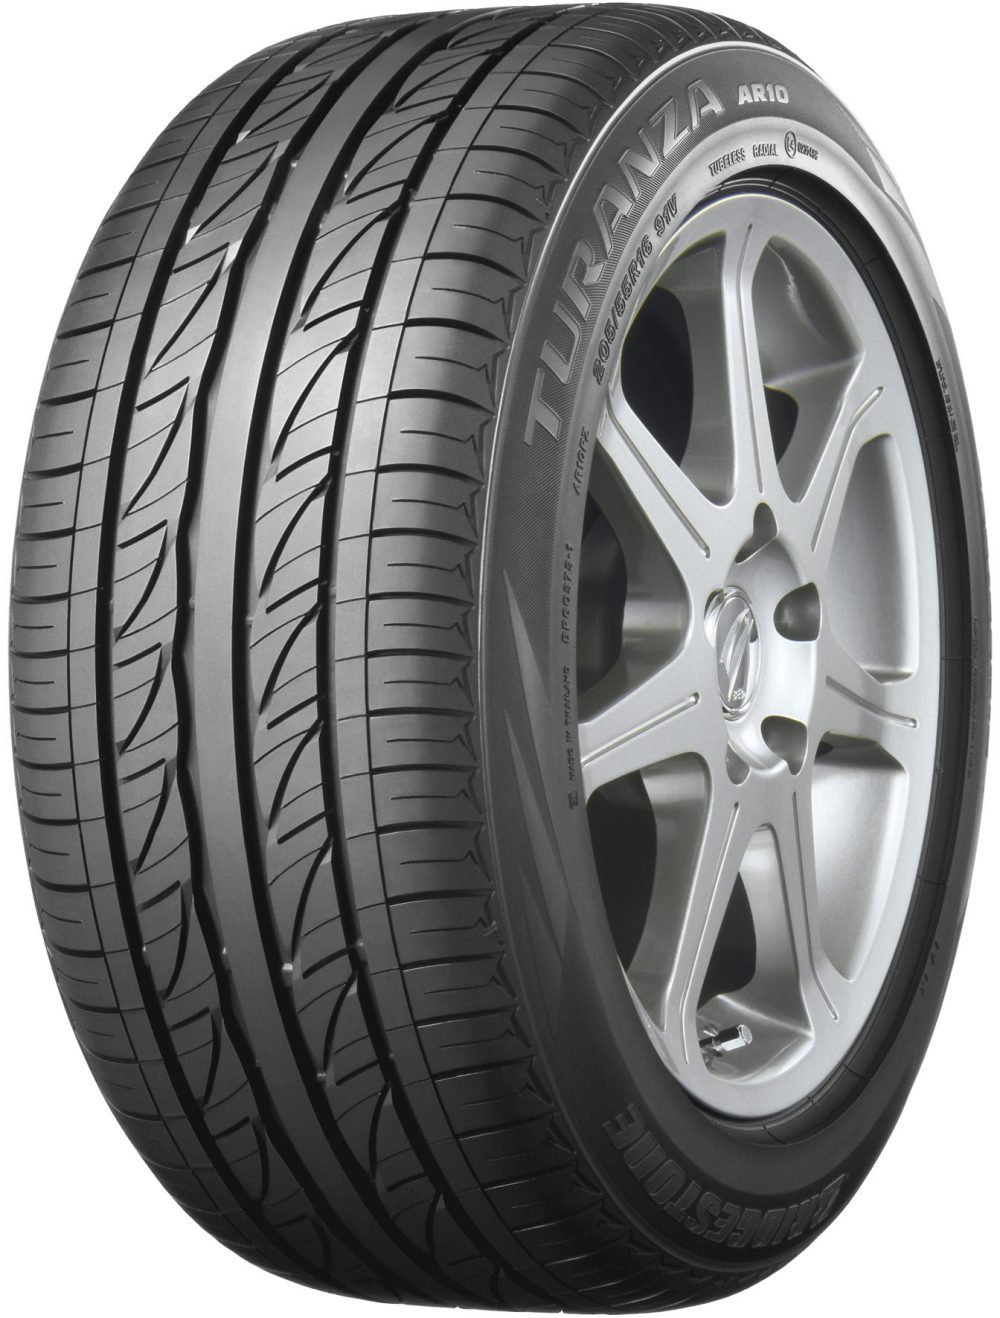 165/65 R13 AR10 Bridgestone Indonesia